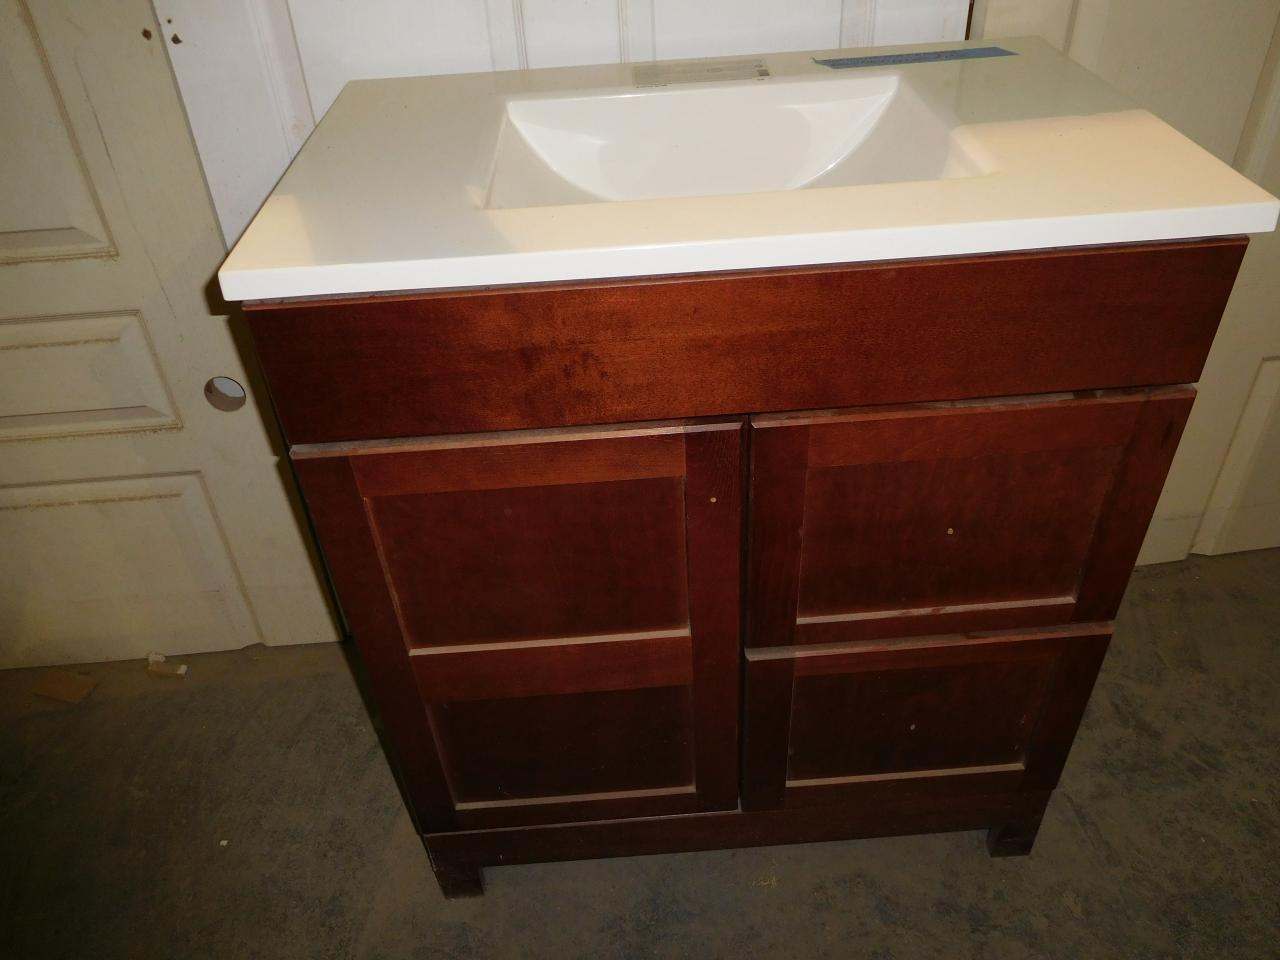 Bathroom Vanity Outlet. Sensational Design Bathroom Vanity Mississauga Outlet Vanities With ...